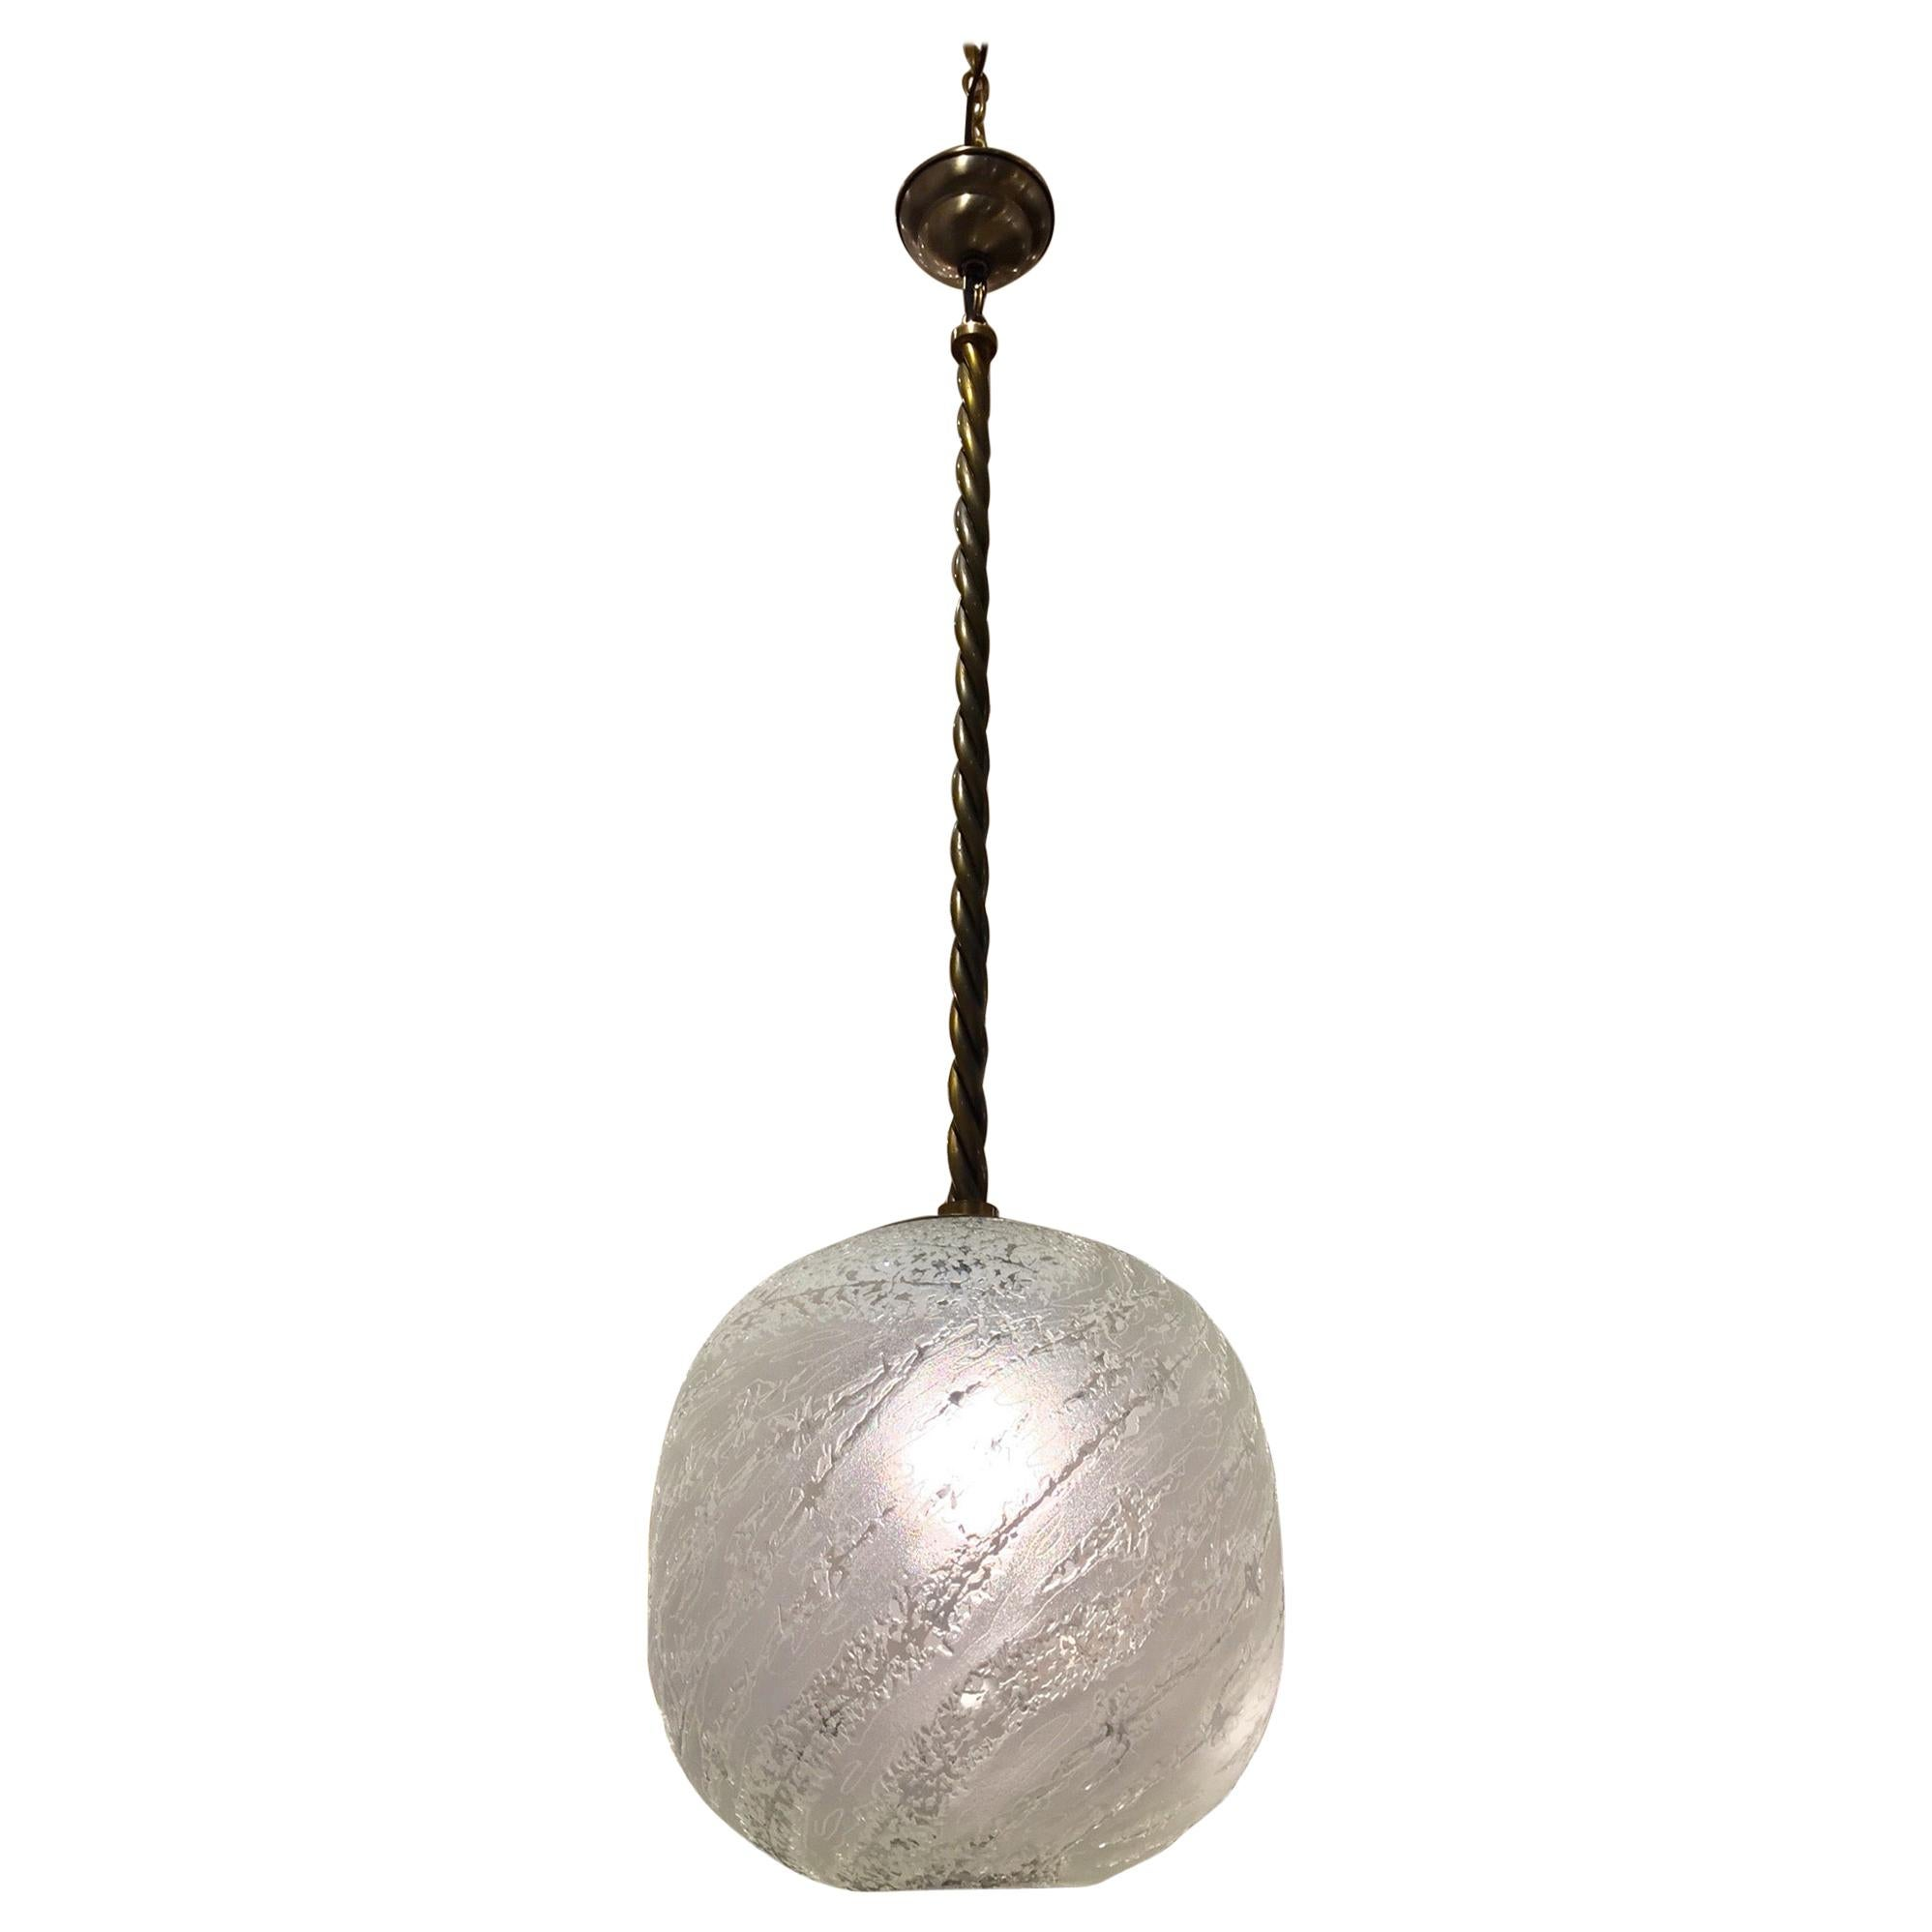 Textured Frosted Murano Glass Globe Pendant Light